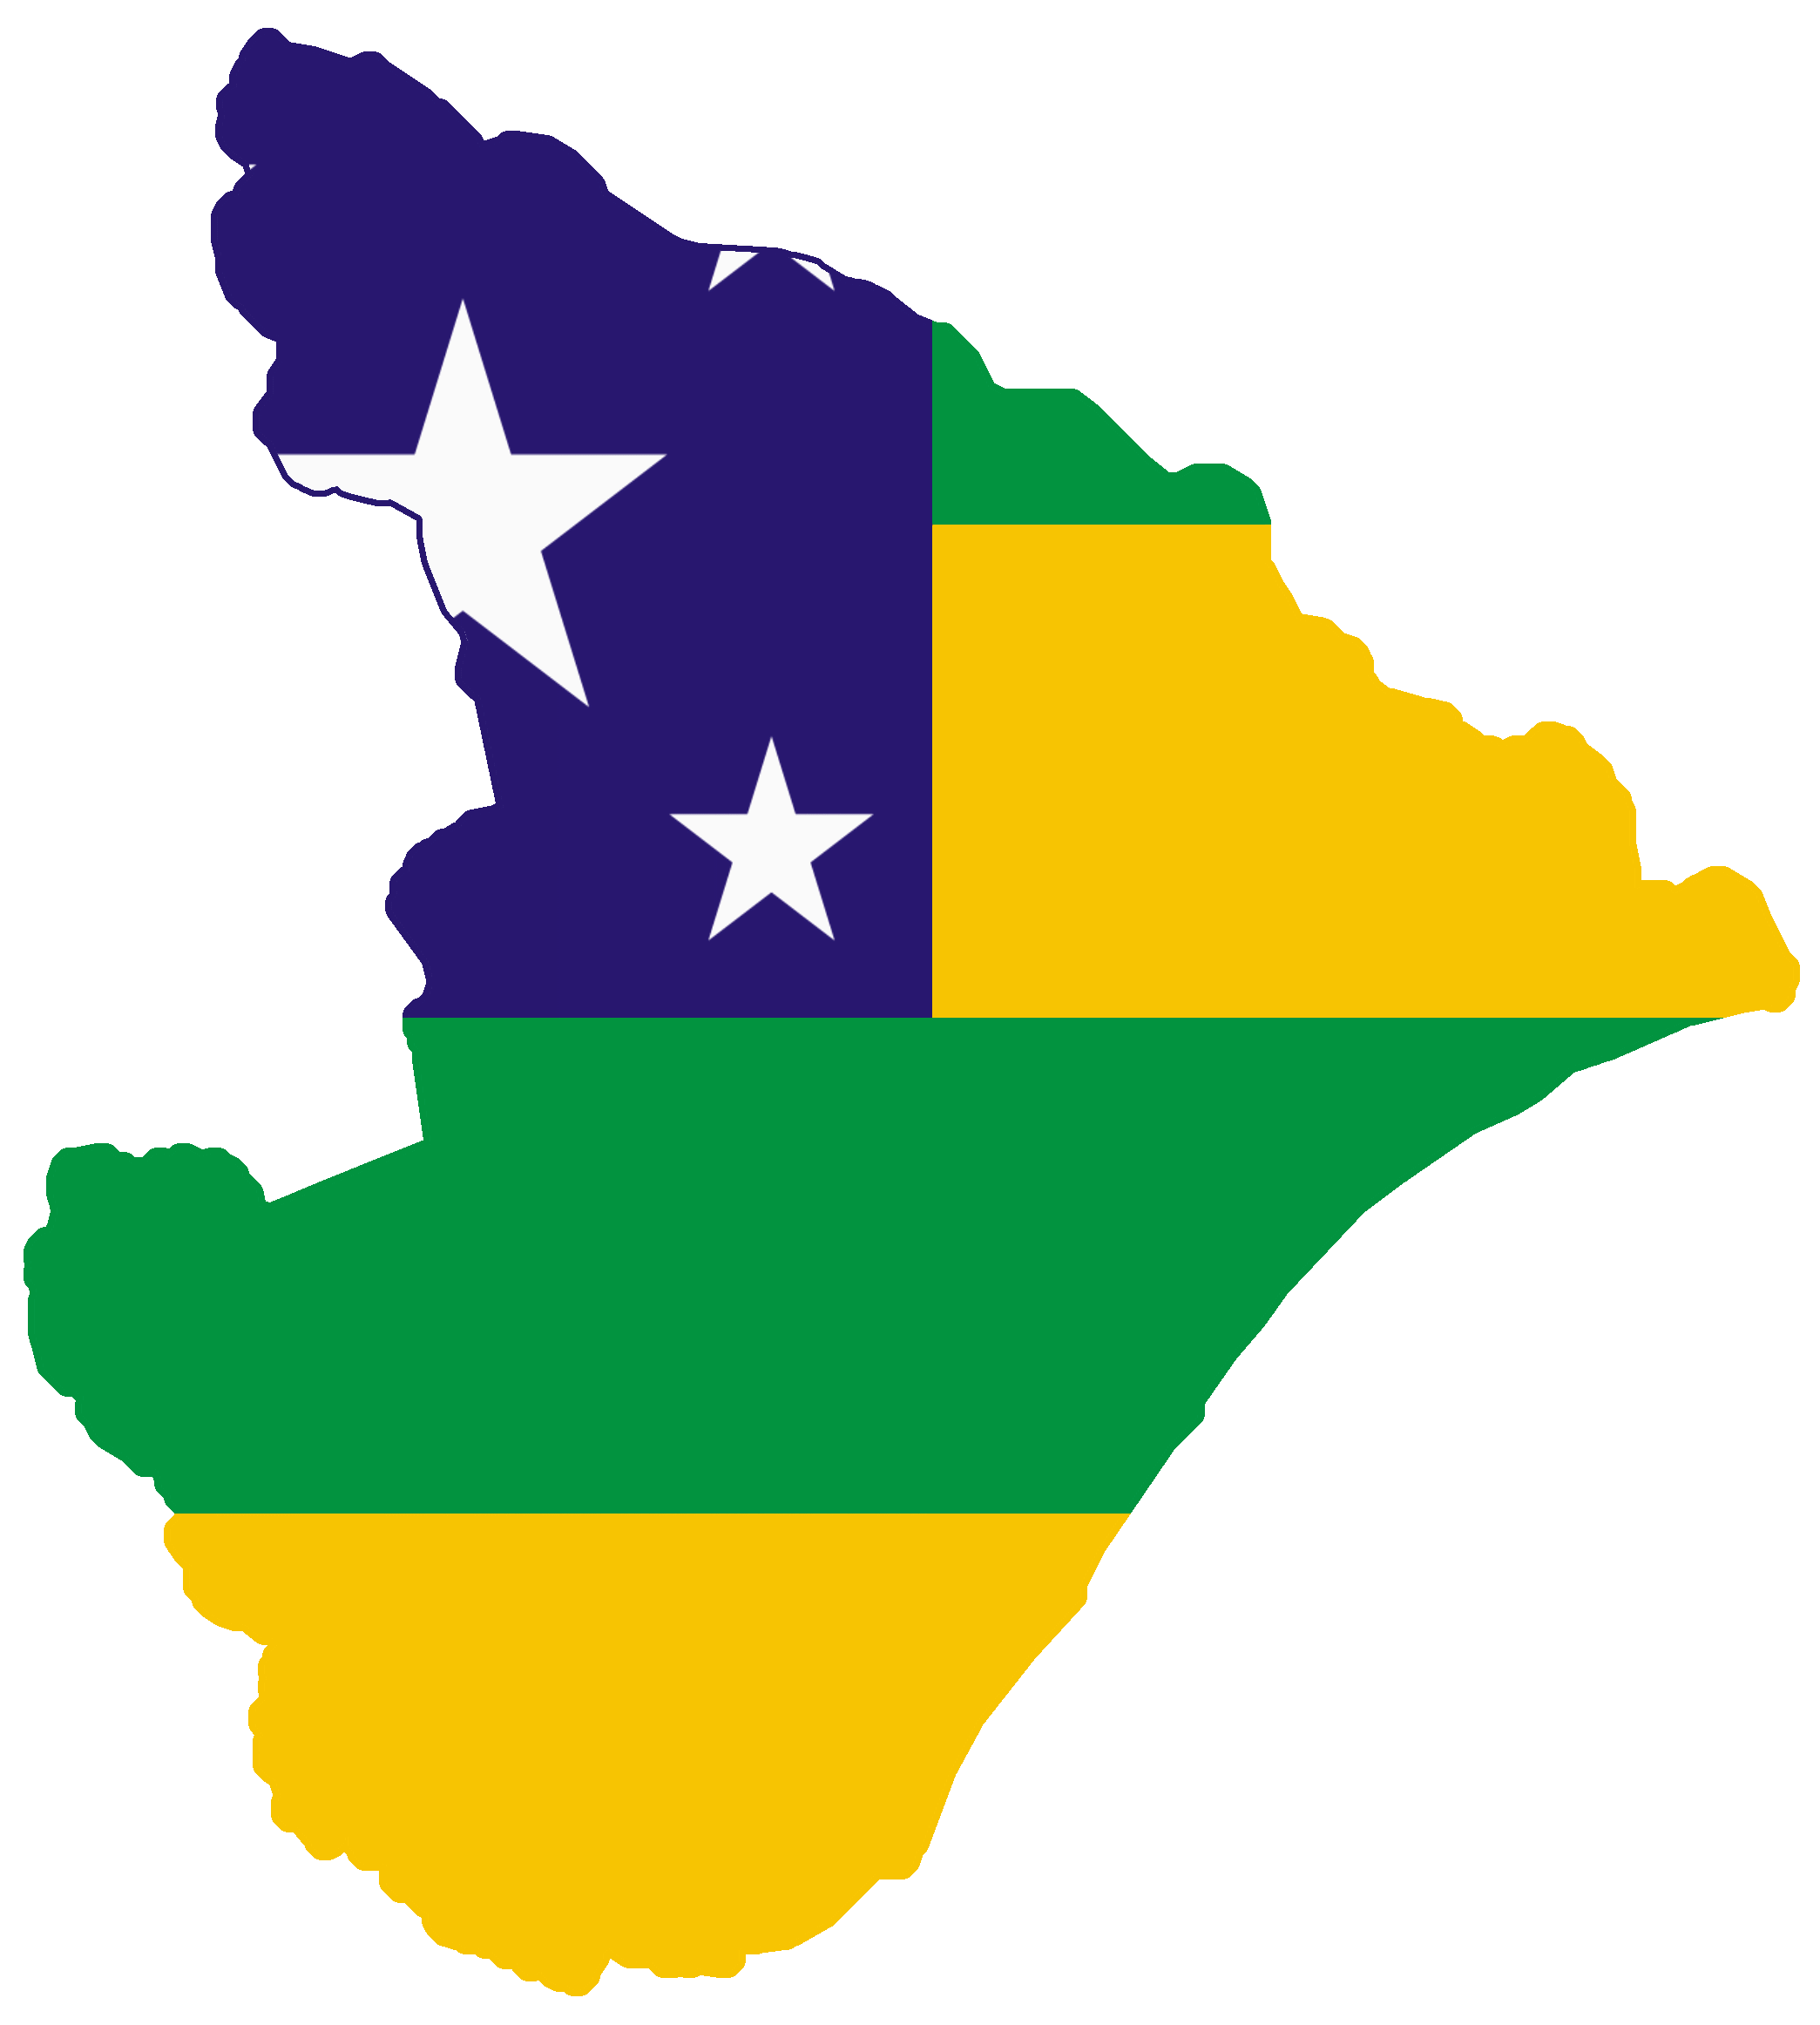 File:Flag map of Sergipe.png.